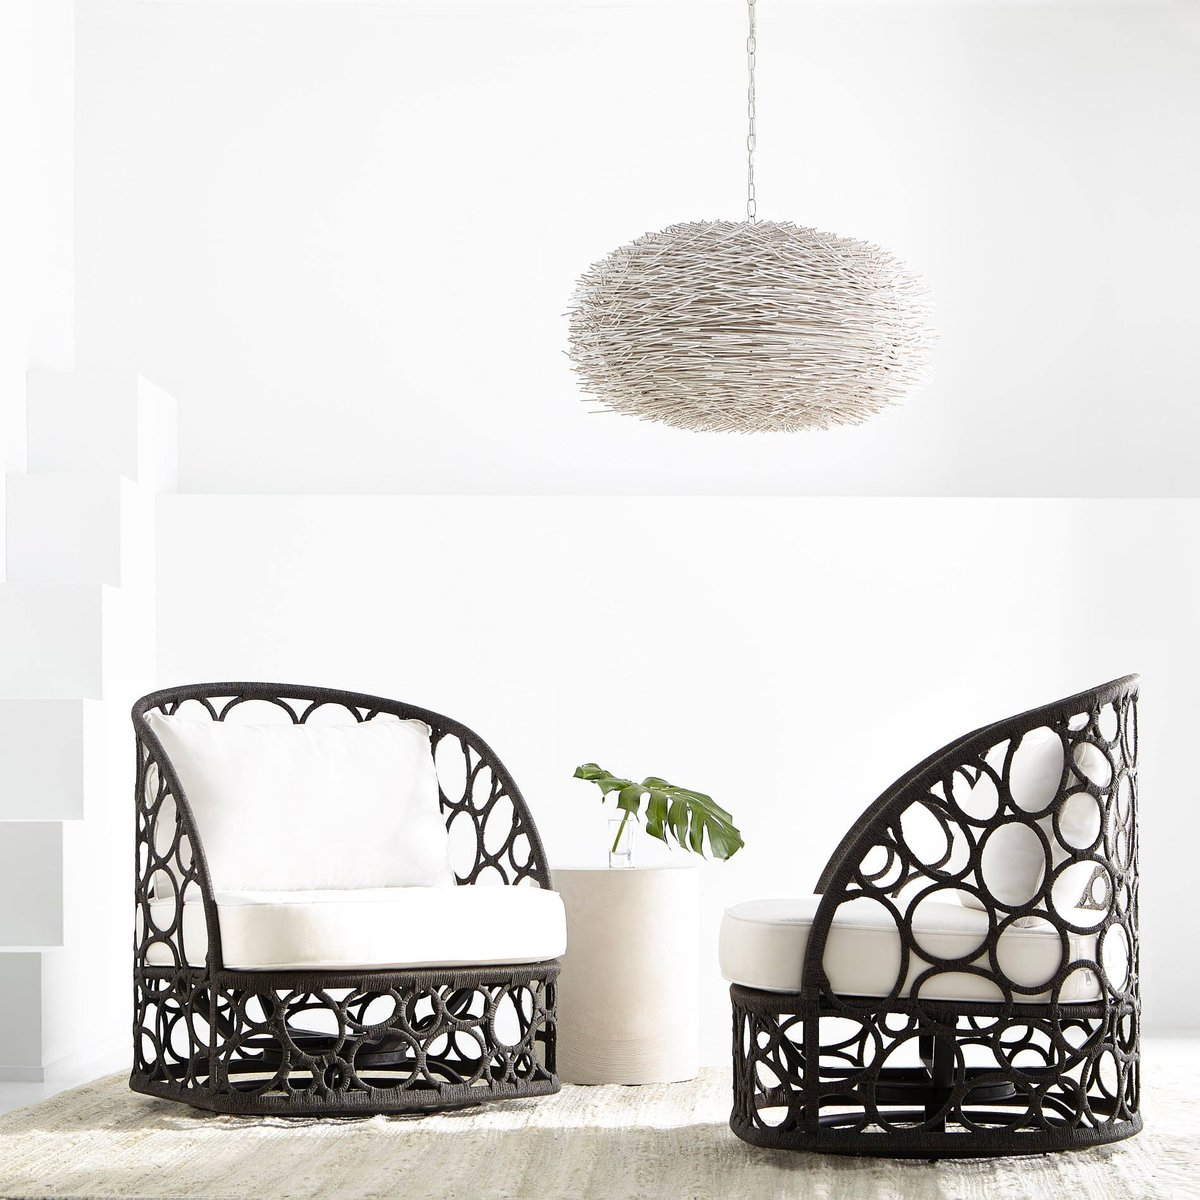 Encircling beauty. Our Bali Swivel Chair - in laser-cut aluminum wrapped w performance wicker - is part of Bernhardt Exteriors, available in spring. Learn more about Bernhardt Exteriors here: https://info.bernhardt.com/bernhardt-exteriors… #outdoorfurniture #hpmkt #interiordesign #exteriordesign pic.twitter.com/BhcTvvzz0t